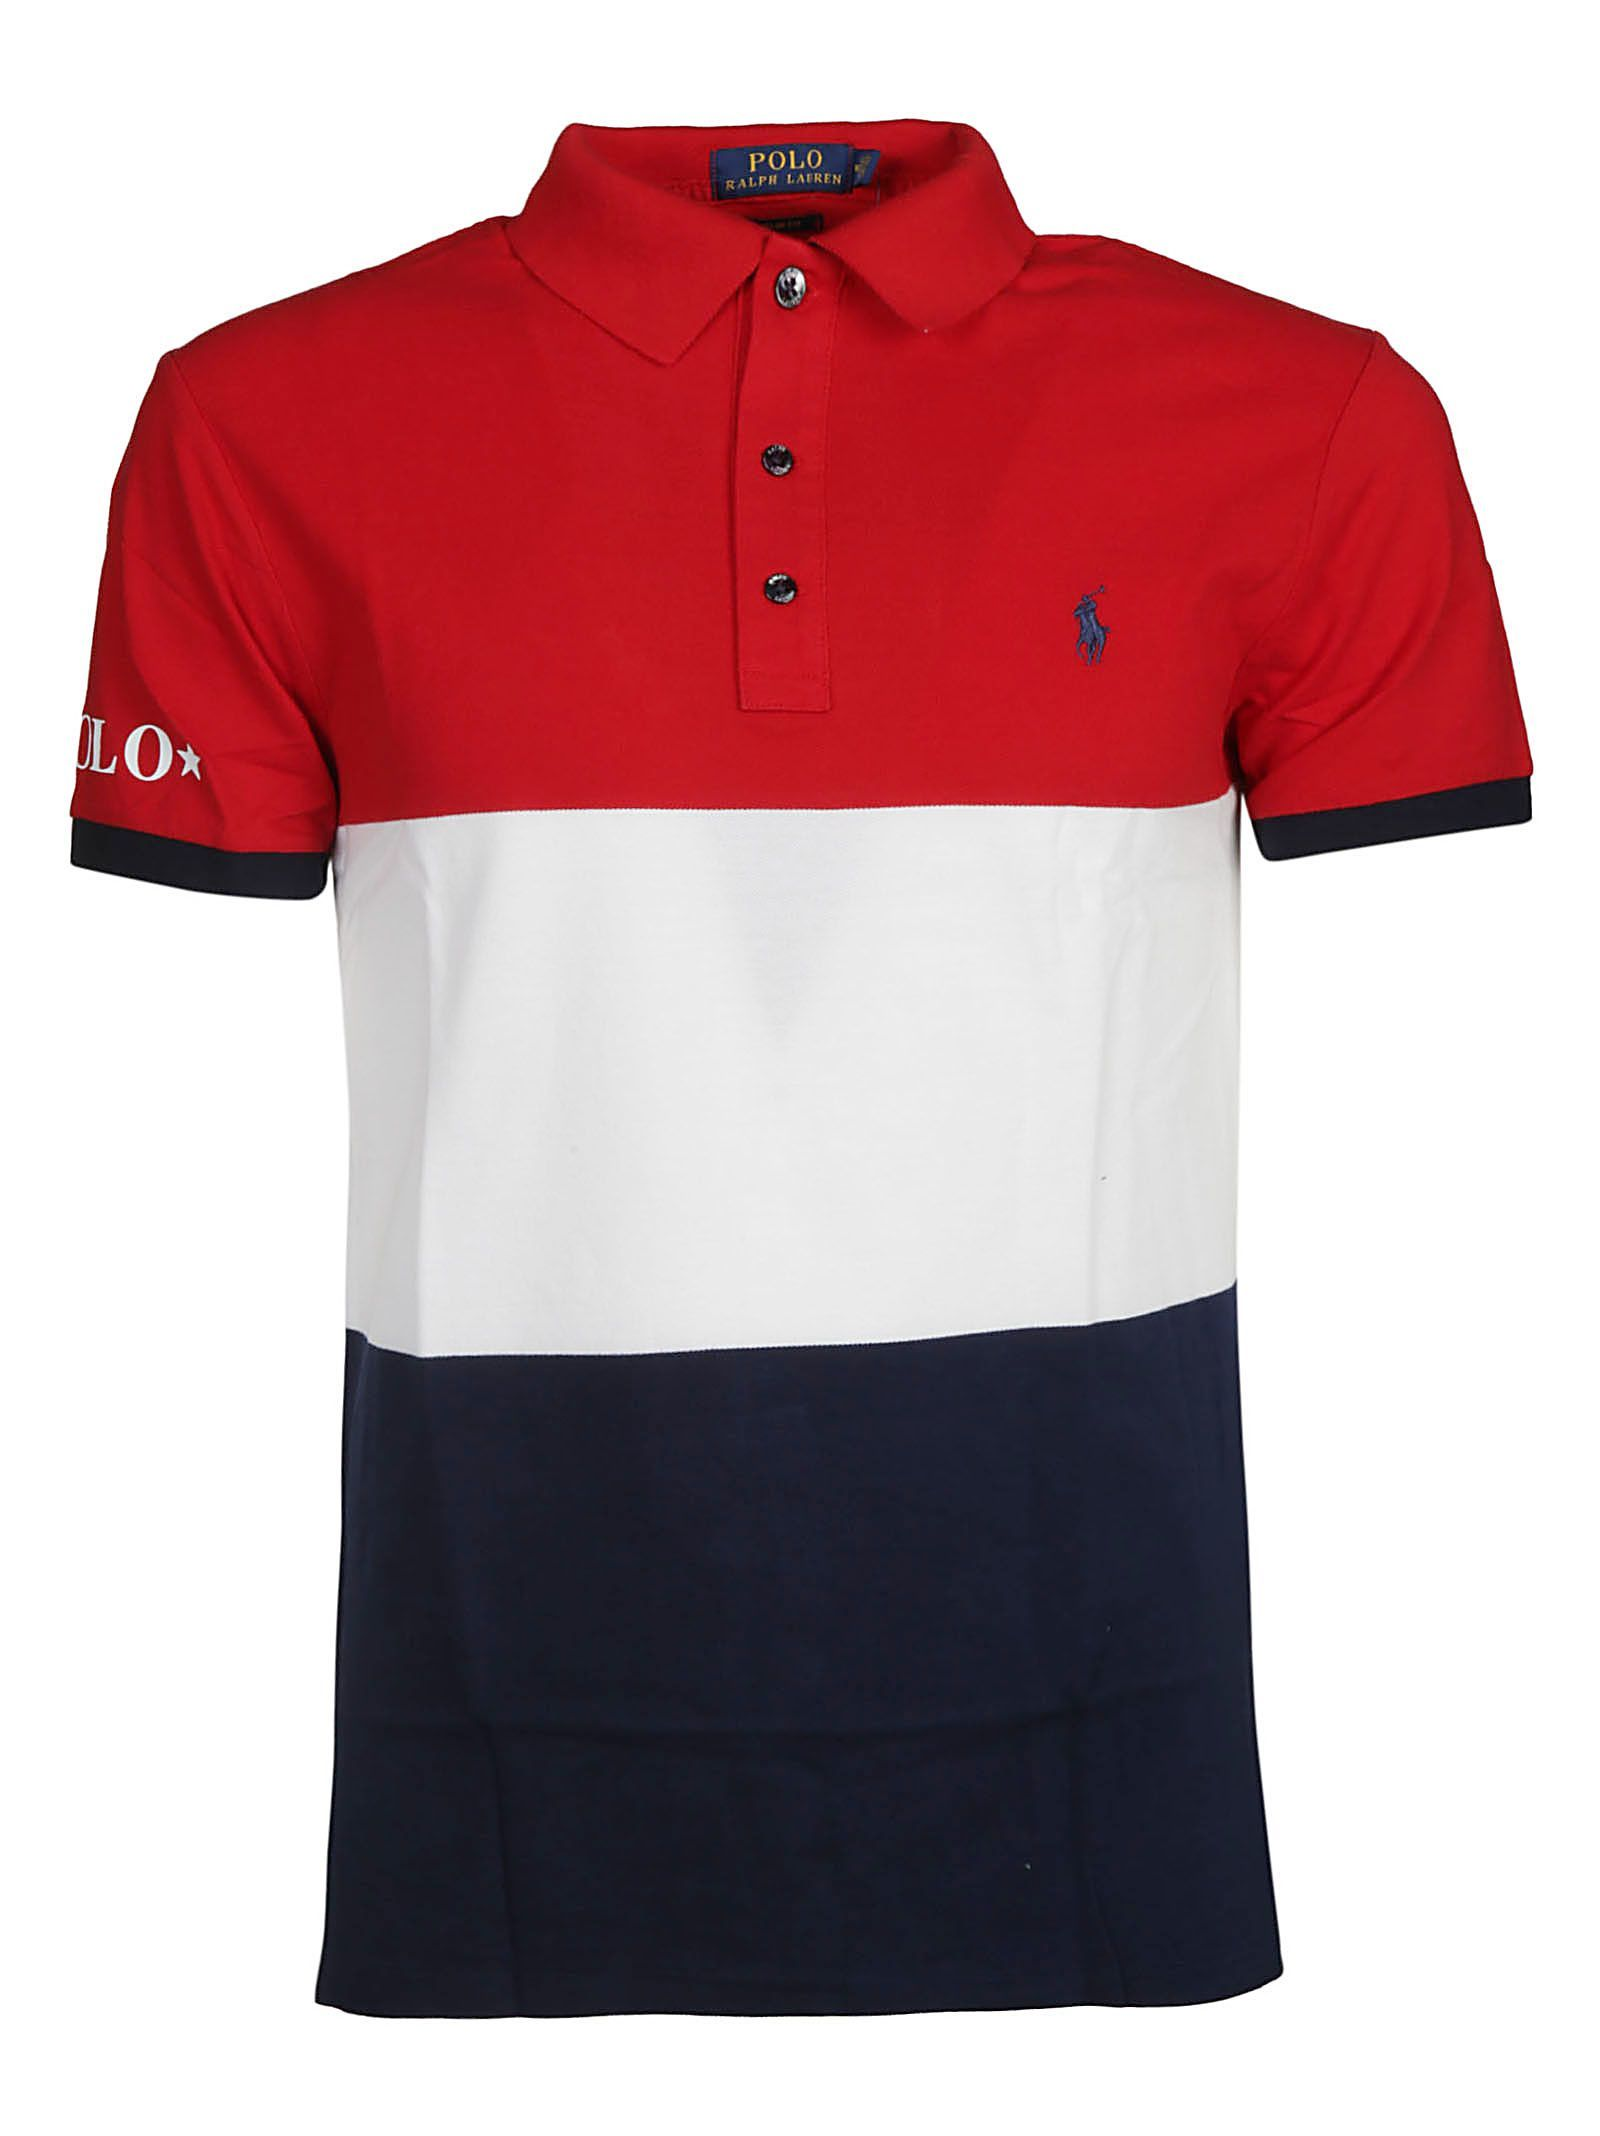 46ff5635aaf RALPH LAUREN COLOR-BLOCK POLO SHIRT.  ralphlauren  cloth